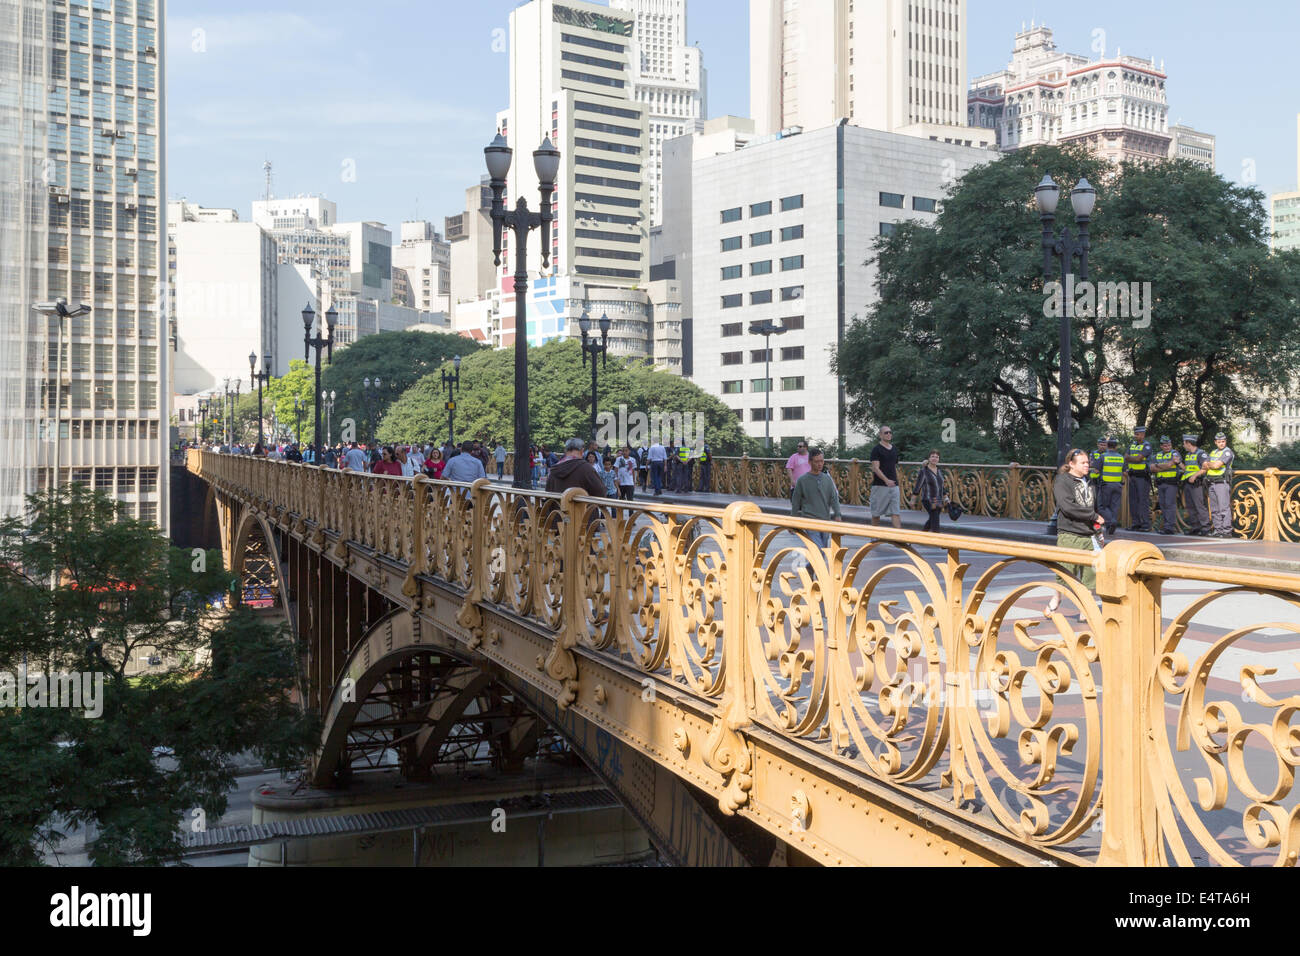 People walk on the Viaduto Santa Ifigenia, Sao Paulo, Brazil - Stock Image